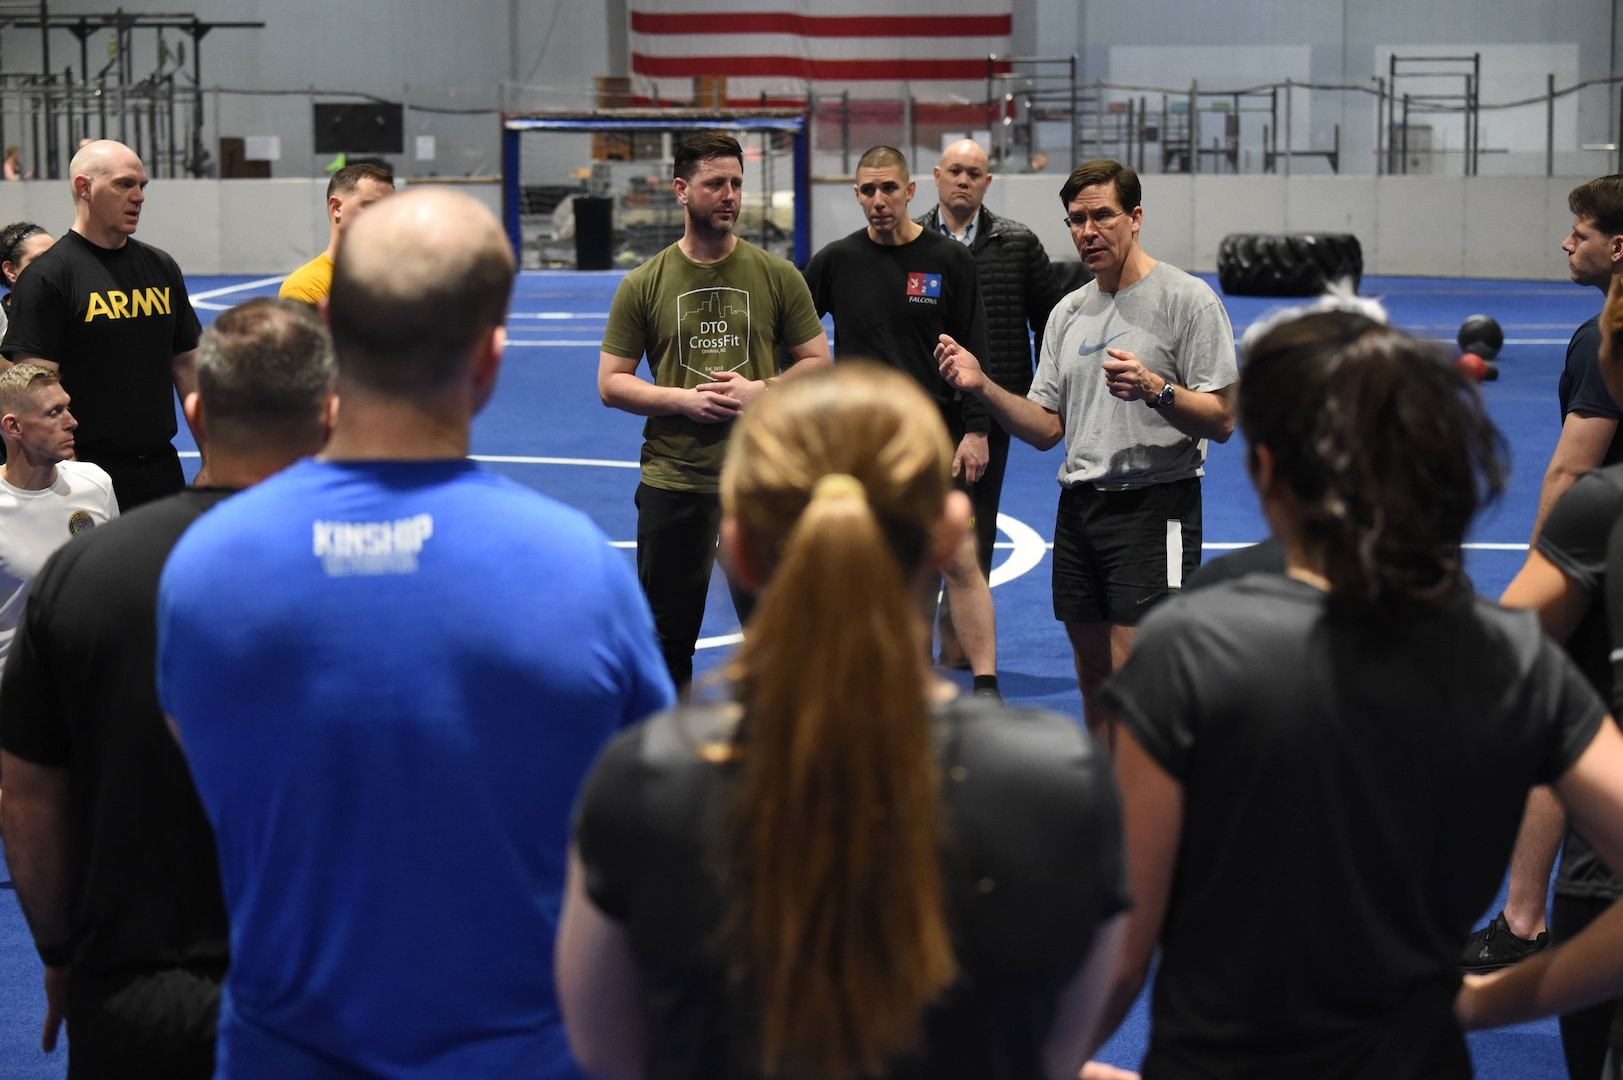 Secretary of Defense Dr. Mark T. Esper engages with U.S. Strategic Command (USSTRATCOM) and 55th Wing service members at the field house at Offutt Air Force Base, Neb., Feb. 20, 2020. Esper participated in circuit training with more than 40 USSTRATCOM and 55th Wing employees, following up the workout with a question and answer session.